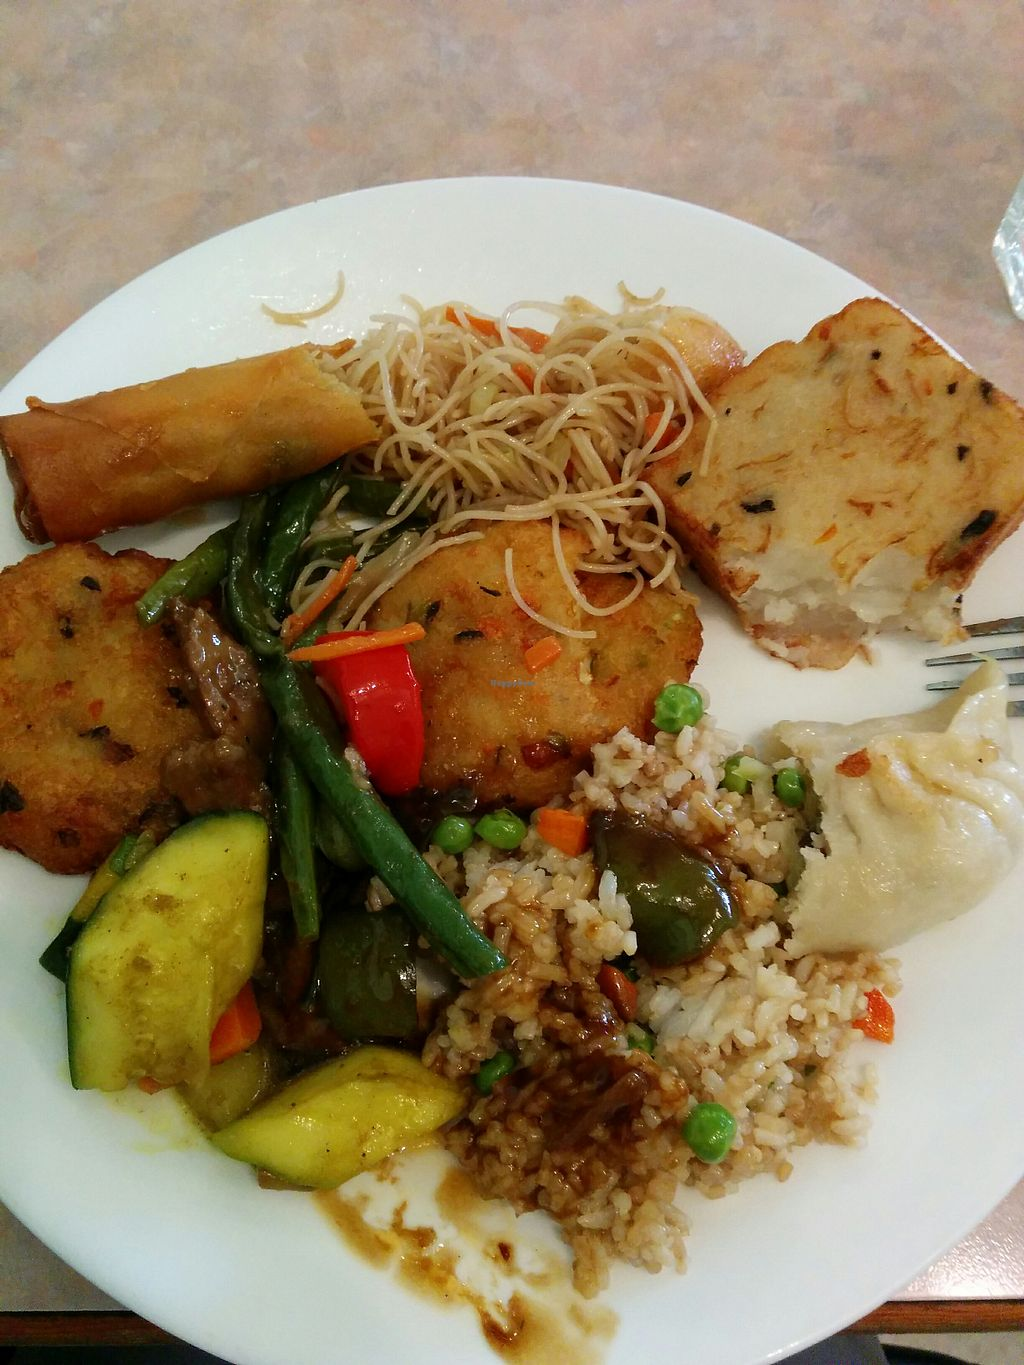 """Photo of Lotus Pond  by <a href=""""/members/profile/CLRtraveller"""">CLRtraveller</a> <br/>My partially eaten buffet plate, which cost a very reasonable C$12 or so <br/> April 20, 2018  - <a href='/contact/abuse/image/1280/388326'>Report</a>"""